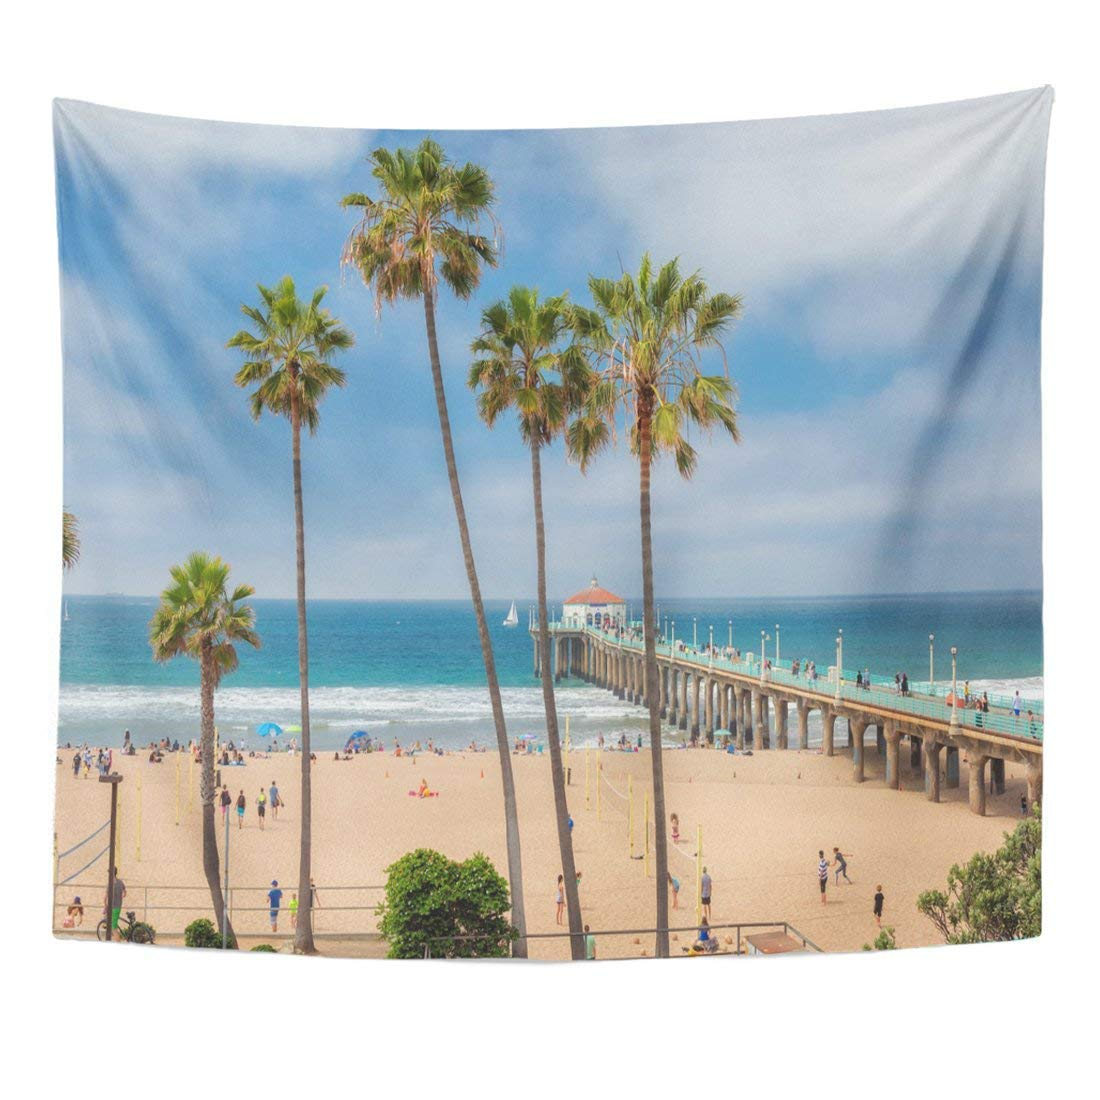 Wall Tapestries 60 x 50 inches Blue Malibu Manhattan Beach Pier Day Time Southern California Los Angeles Orange Palm America Home Decor Wall Hanging Tapestries Living Room Bedroom Dorm